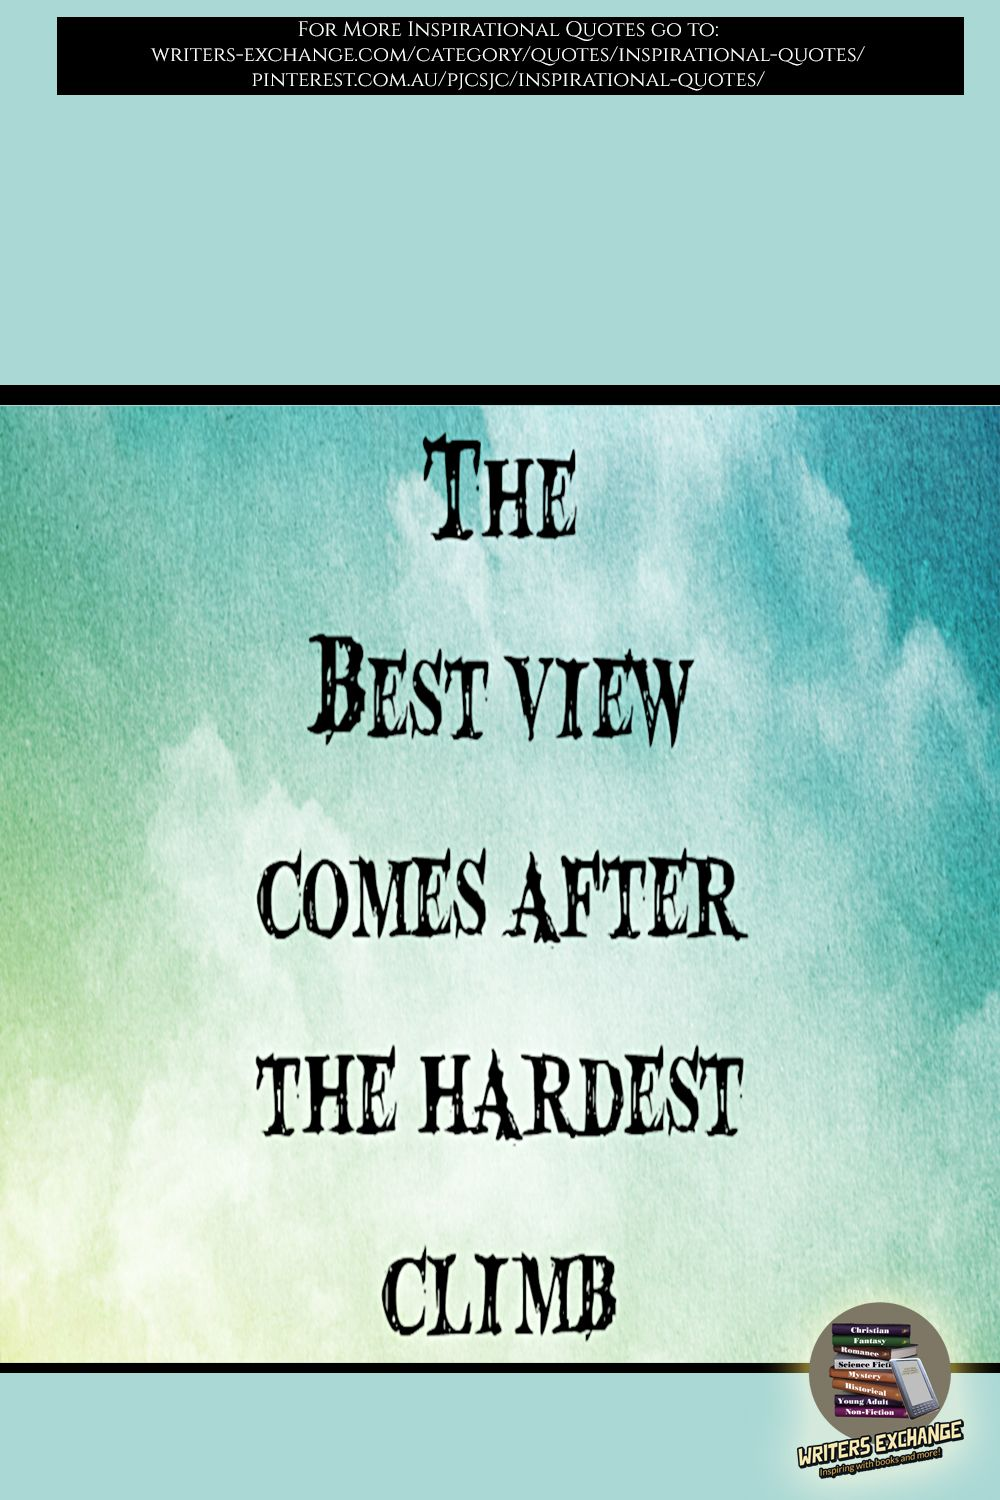 The best view... inspirational quote